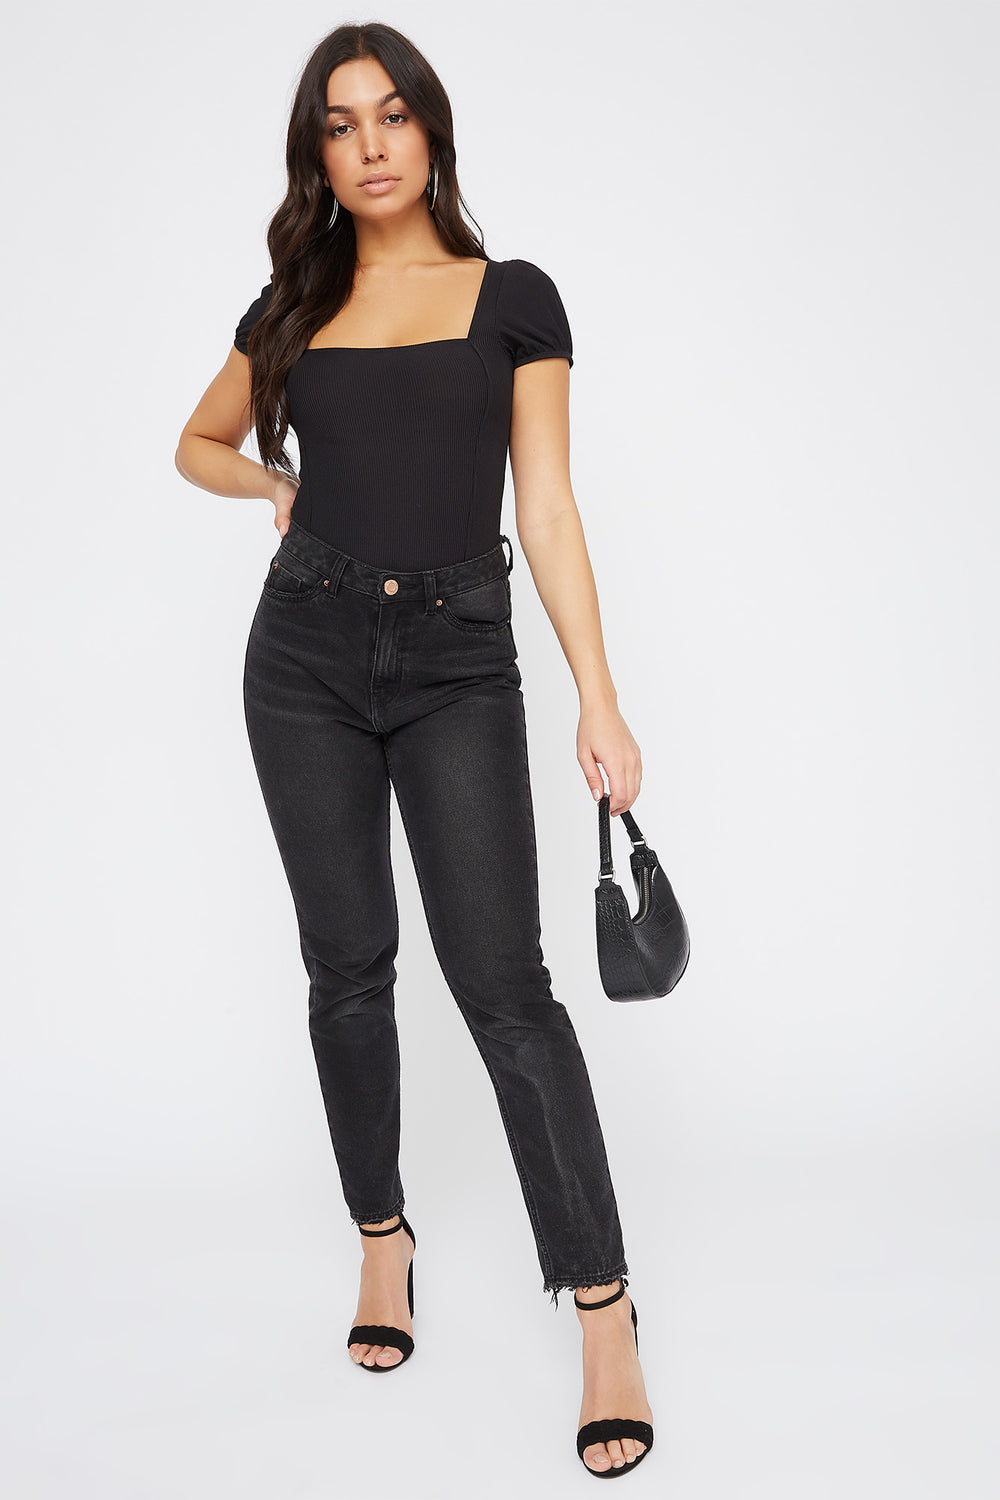 Ribbed Puff Sleeve Square Neck Bodysuit Black